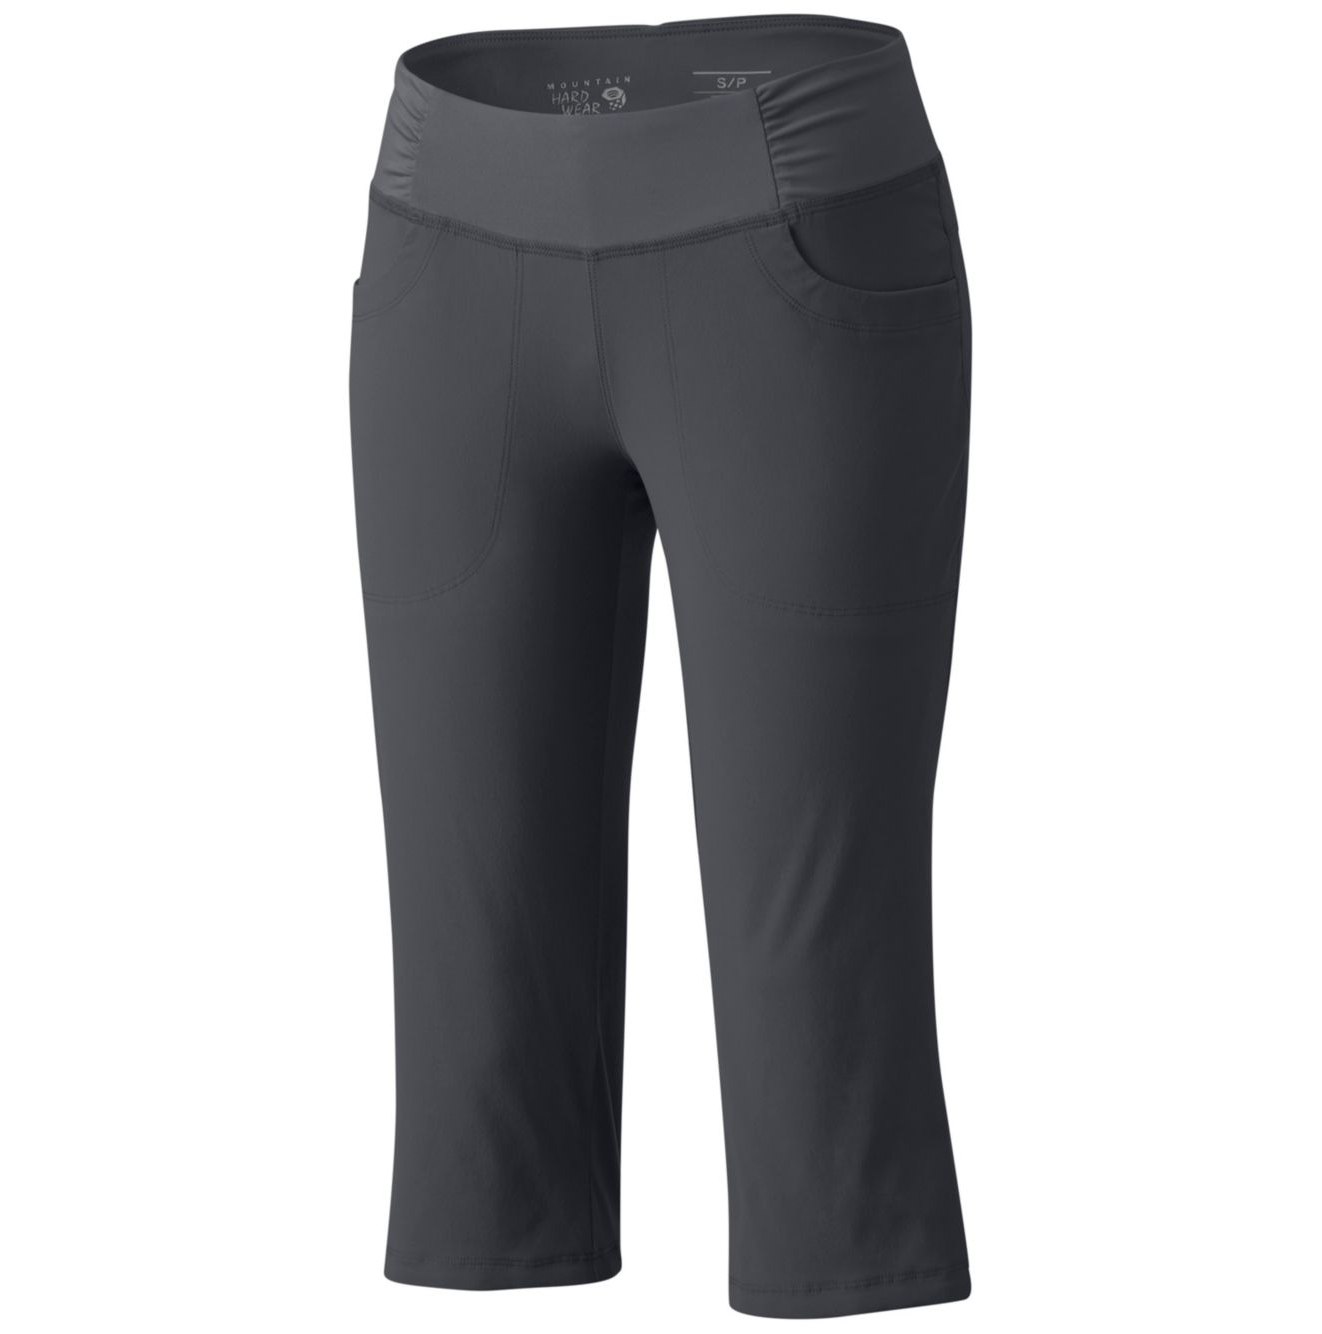 Mountain Hardwear Women's Dynama™ Capri